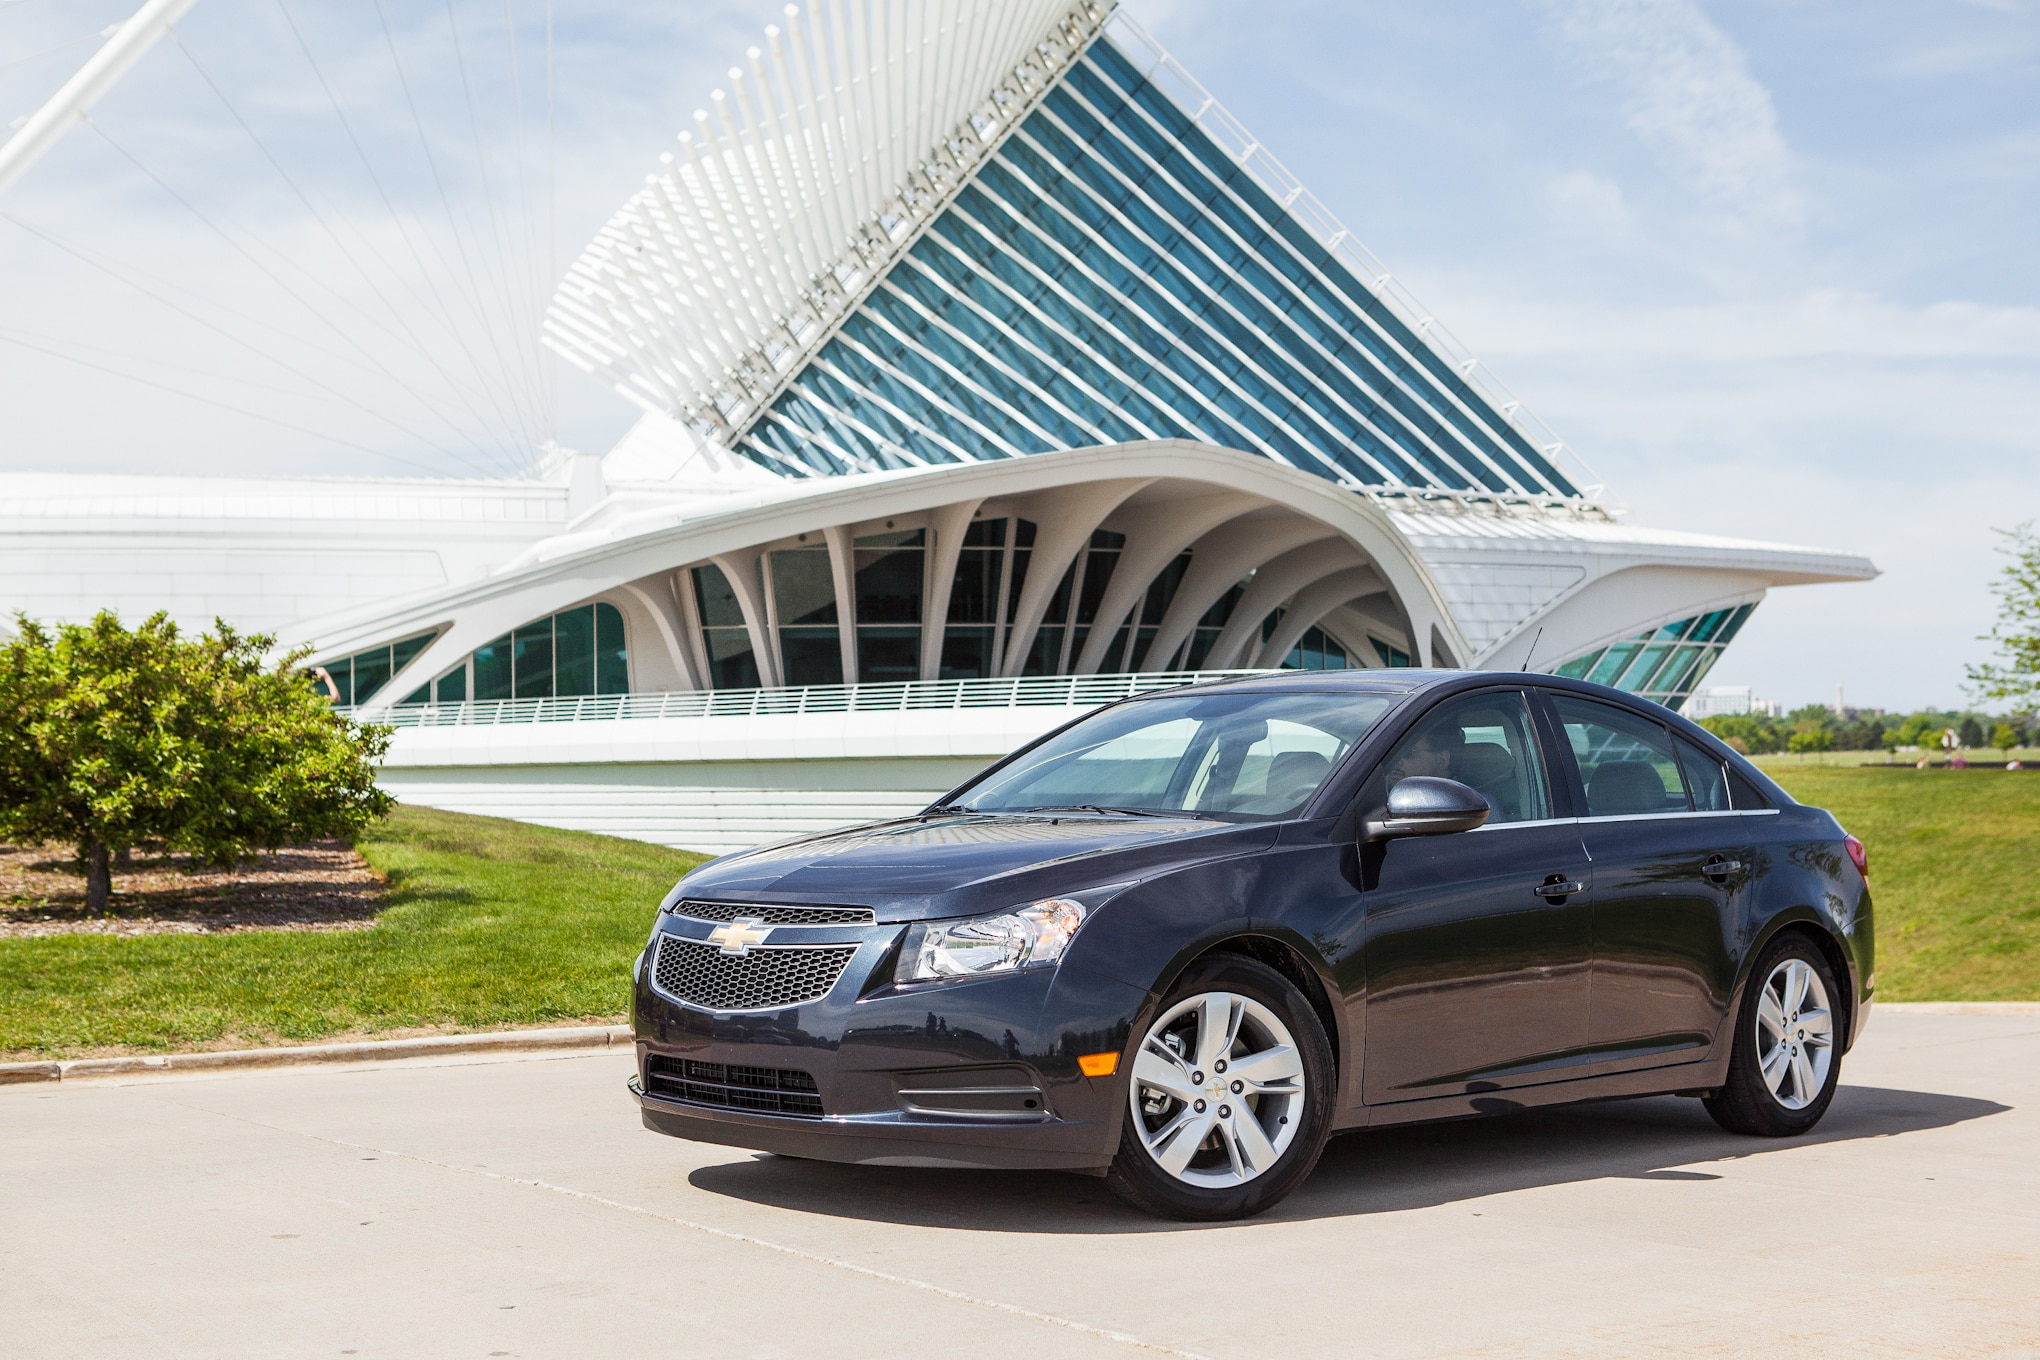 2014 Chevrolet Cruze Diesel Front Left Side View 31